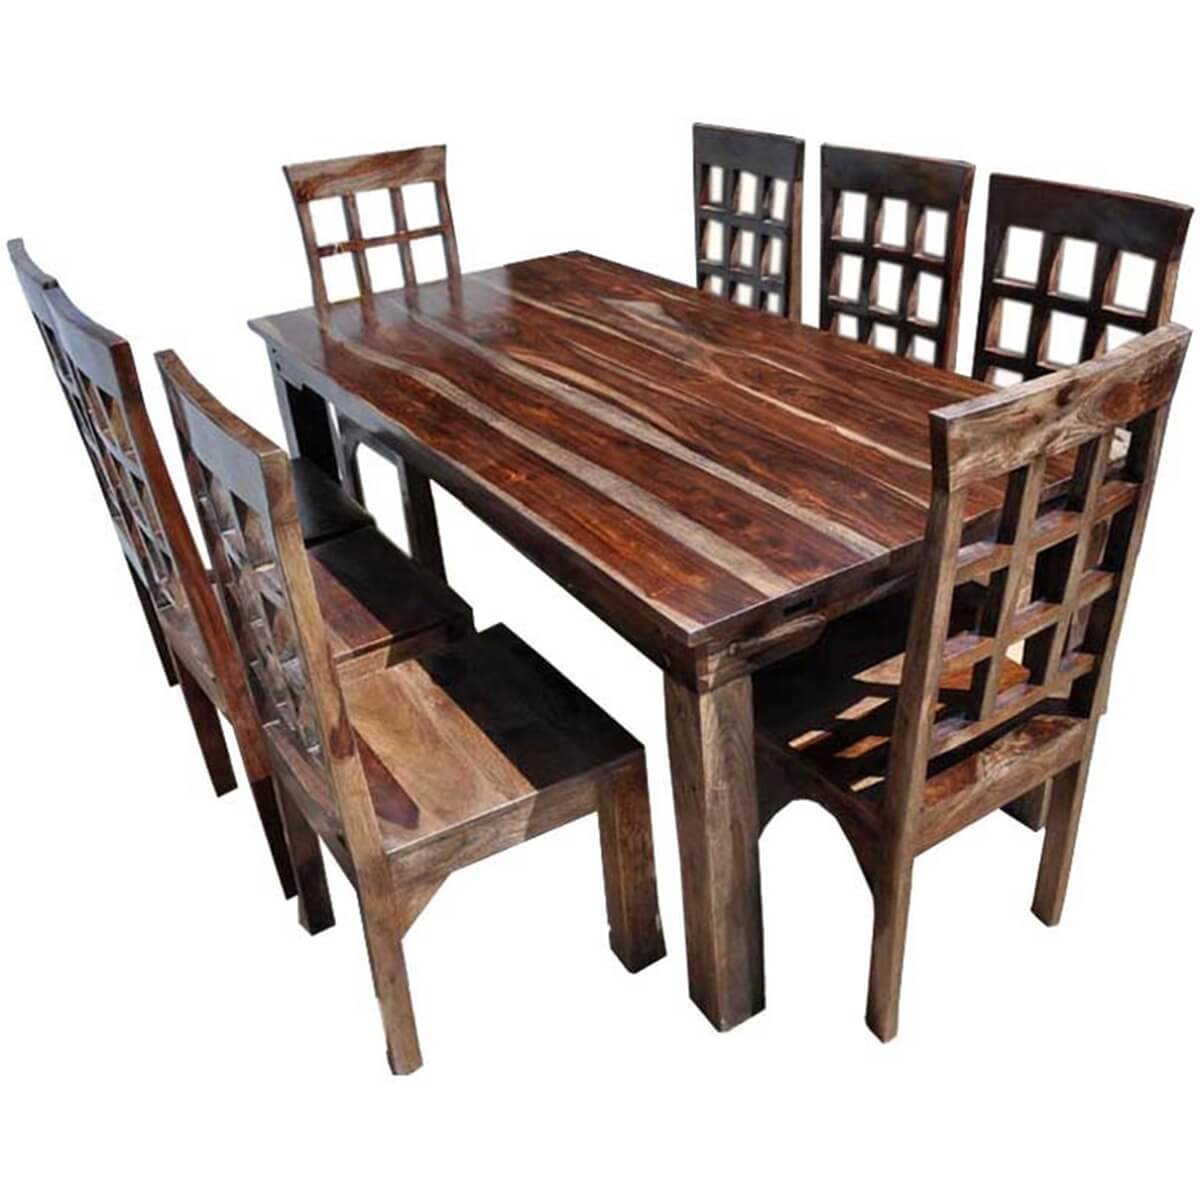 Portland rustic furniture dining room table chair set w extension - Extension tables dining room furniture ...